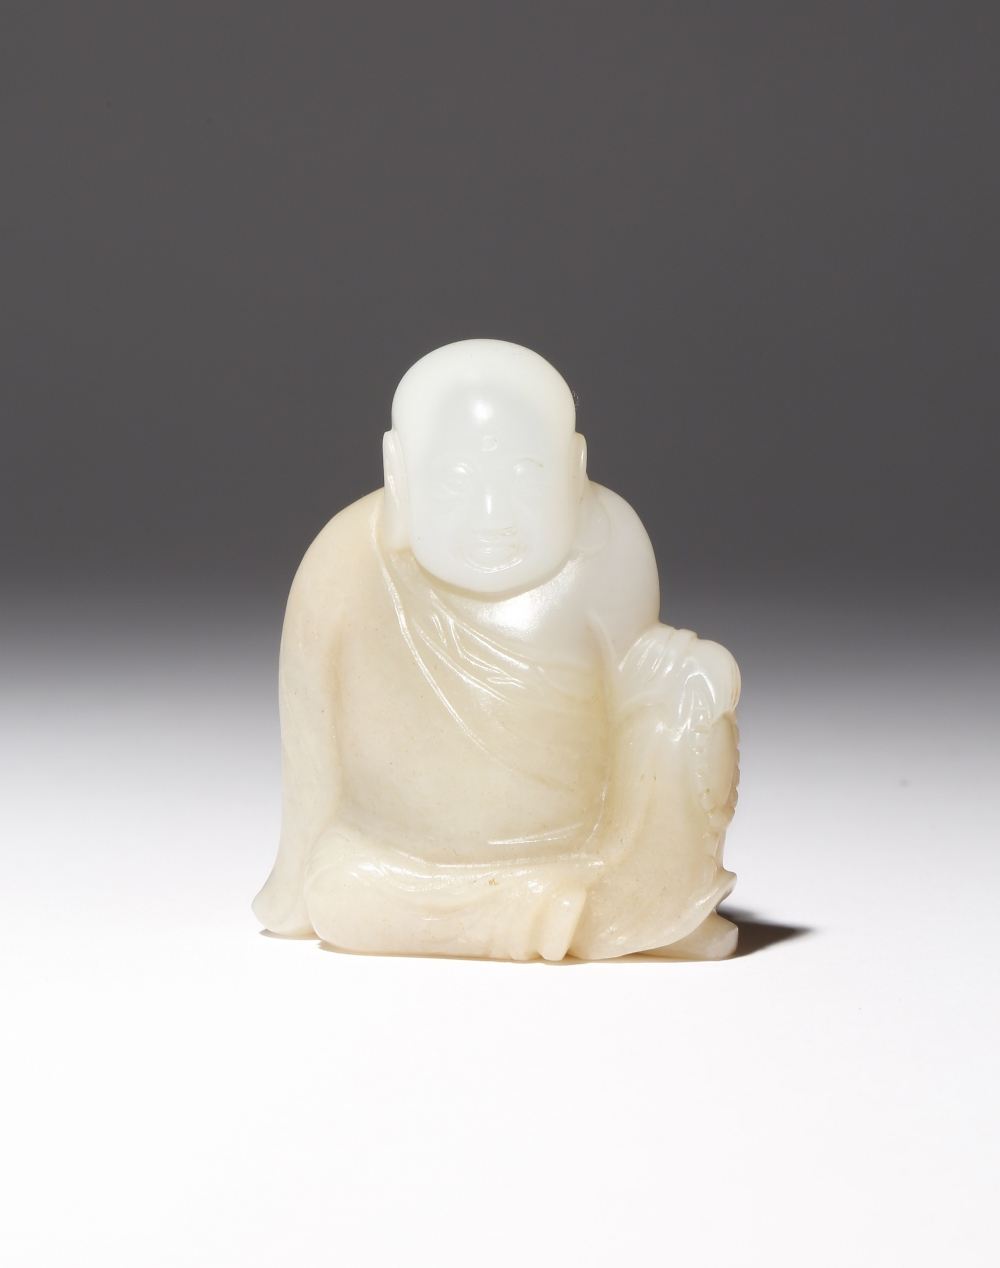 A CHINESE WHITE JADE CARVING OF A LUOHAN QING DYNASTY Depicted seated dressed in monk's robes, his